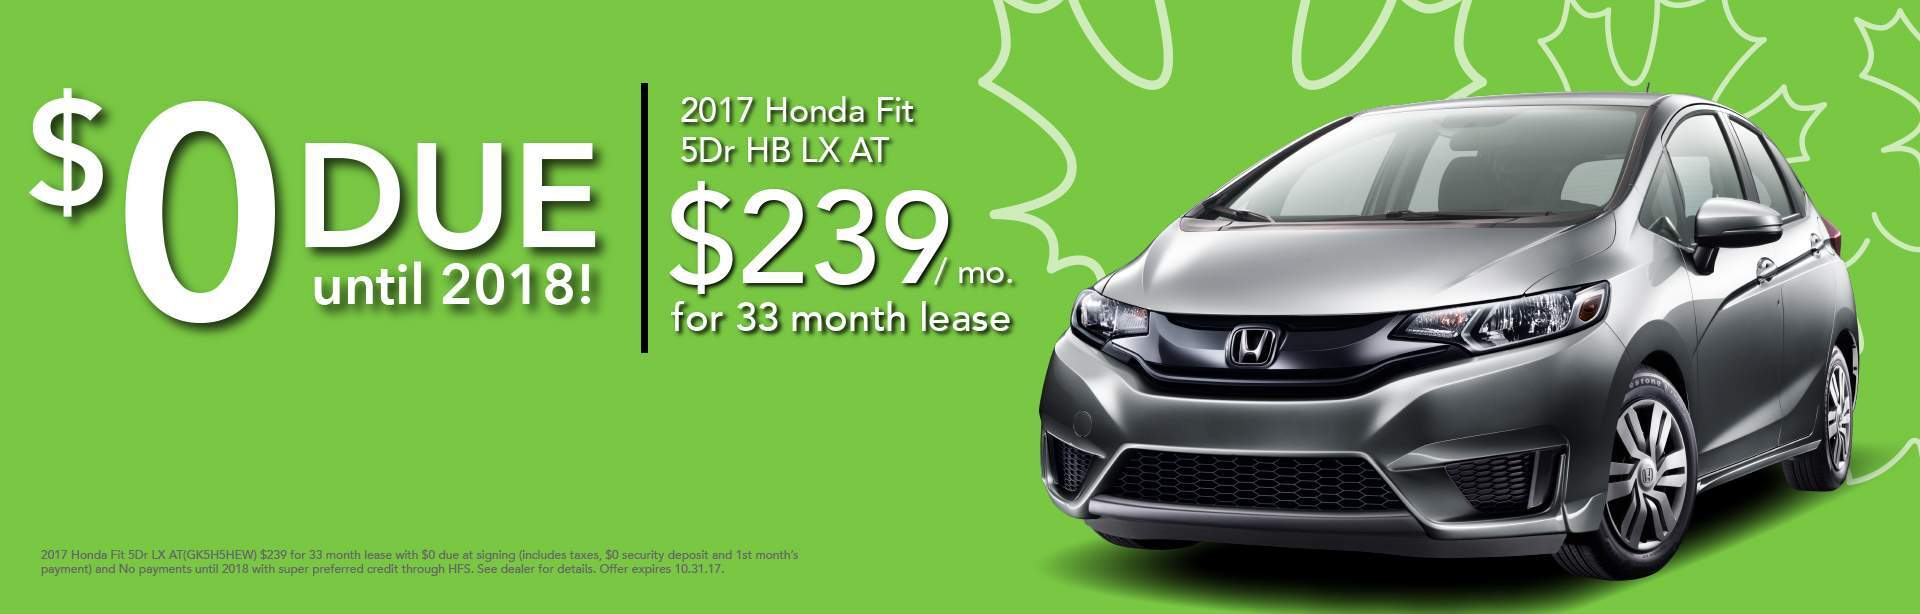 Honda Fit Lease